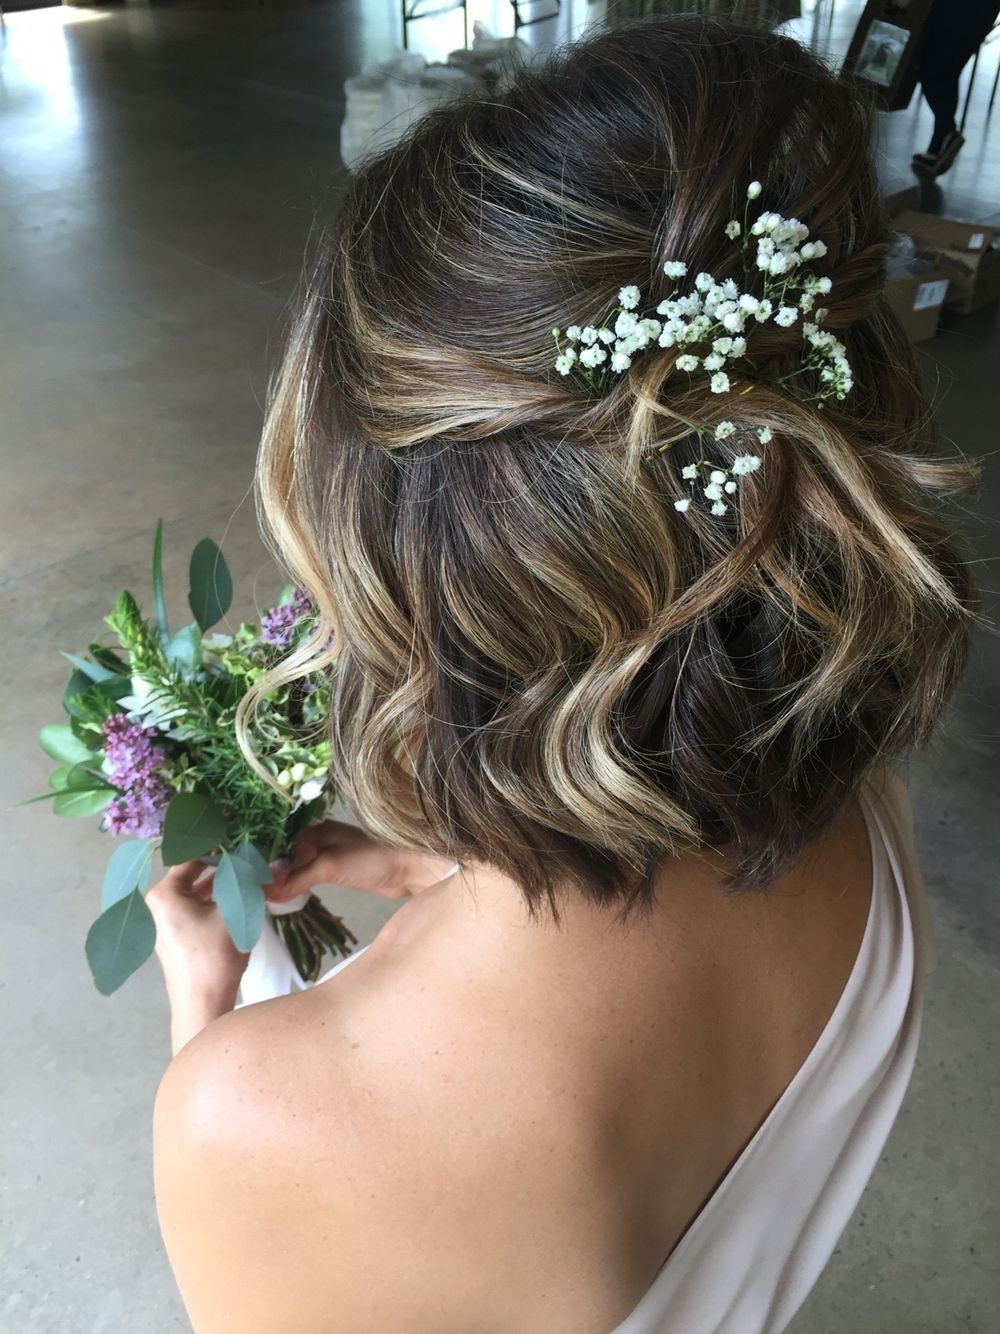 Popular Wedding Hairstyles For Short Hair For Bridesmaids Throughout Bridesmaid Hairstyles For Short Hair (Gallery 10 of 15)